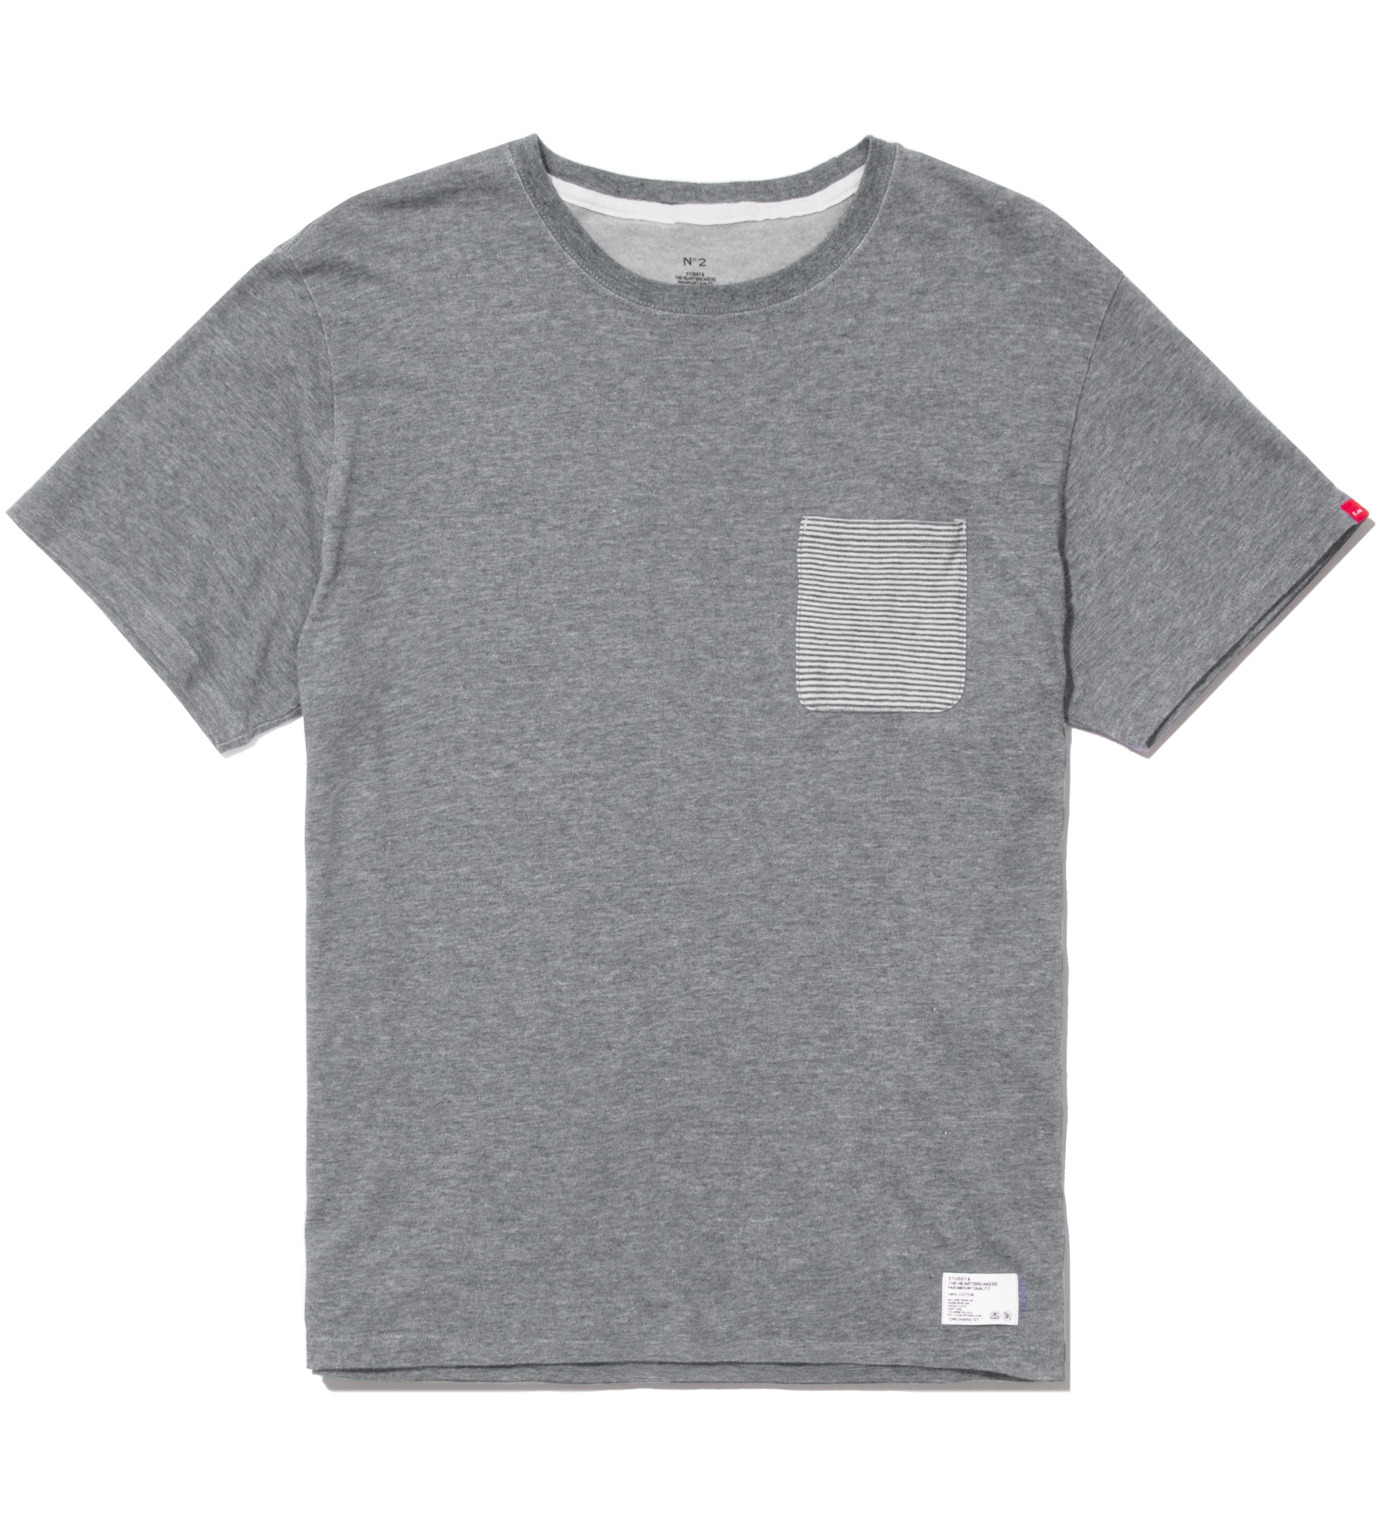 "BEDWIN & THE HEARTBREAKERS Stussy x The Heartbreakers A. Grey ""Lee"" Pocket T-Shirt"